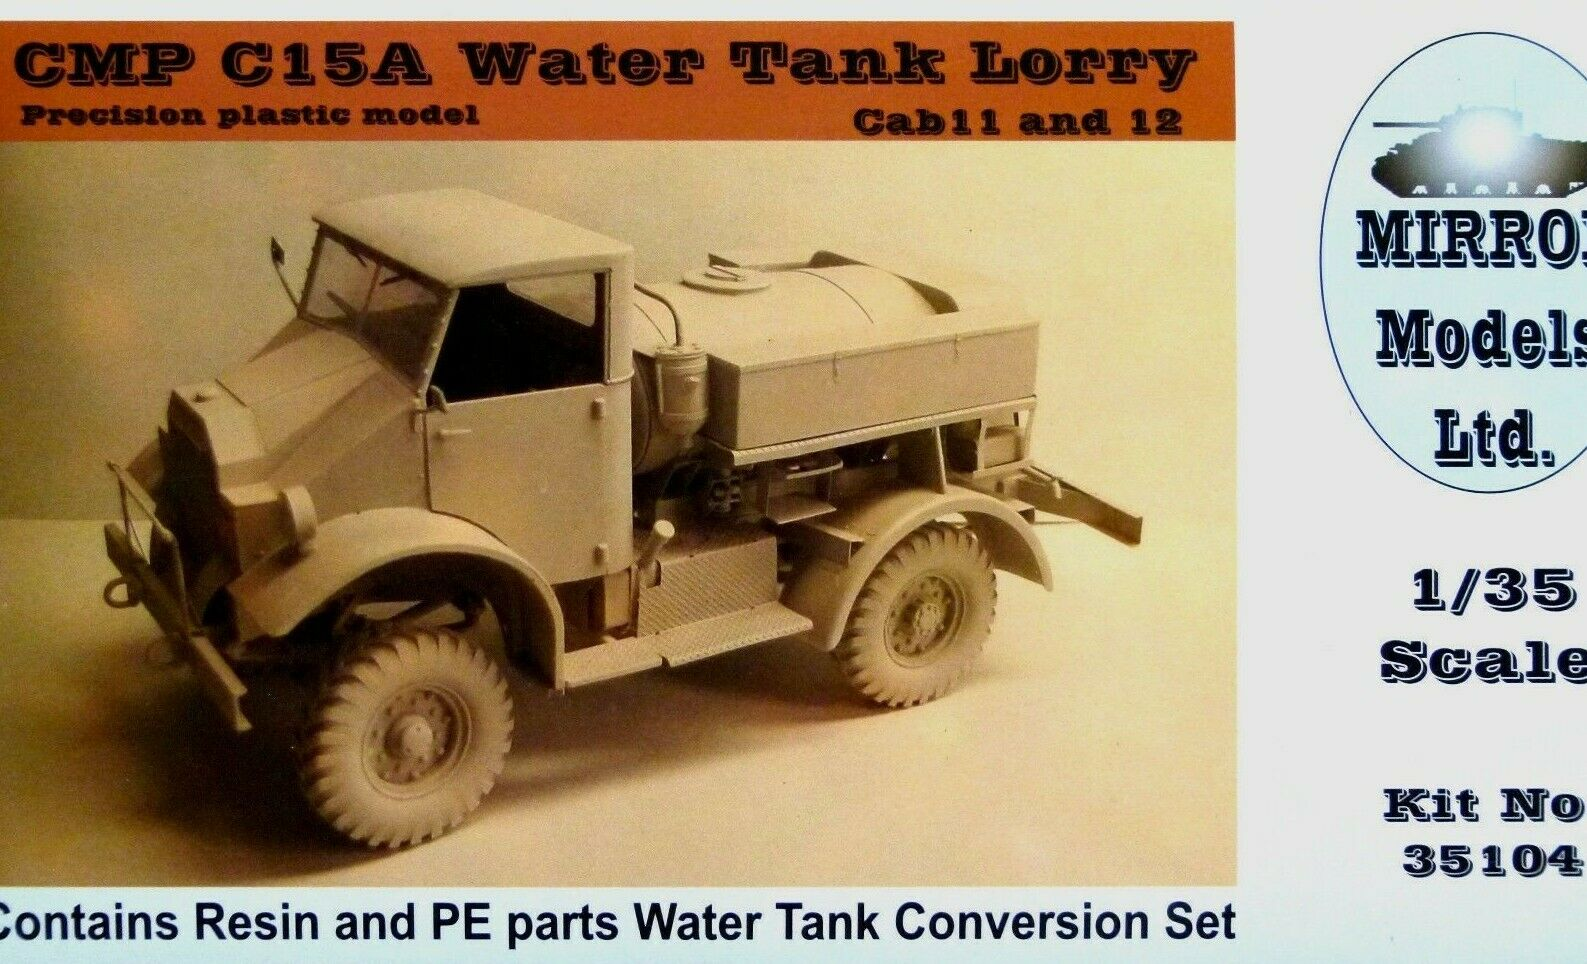 Mirror Models 1 35 Chevrolet CMP C15A Water Tank Lorry Cab 11 And 12 Model Kit